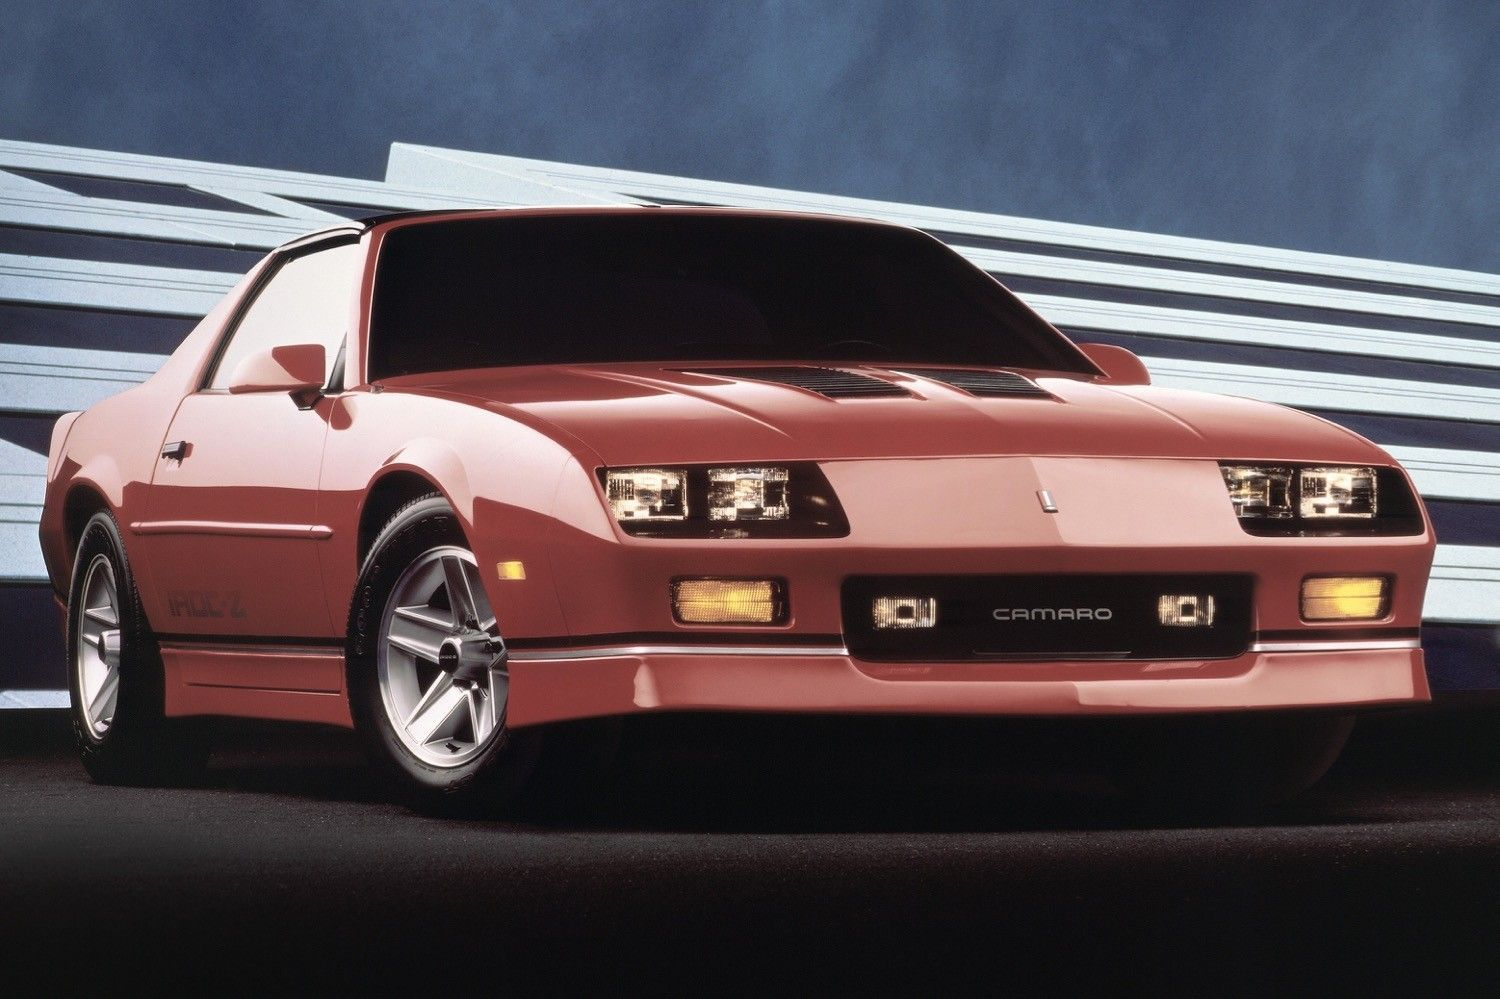 Chevy s trashy camaro iroc z may be the next big collectible says bloomberg